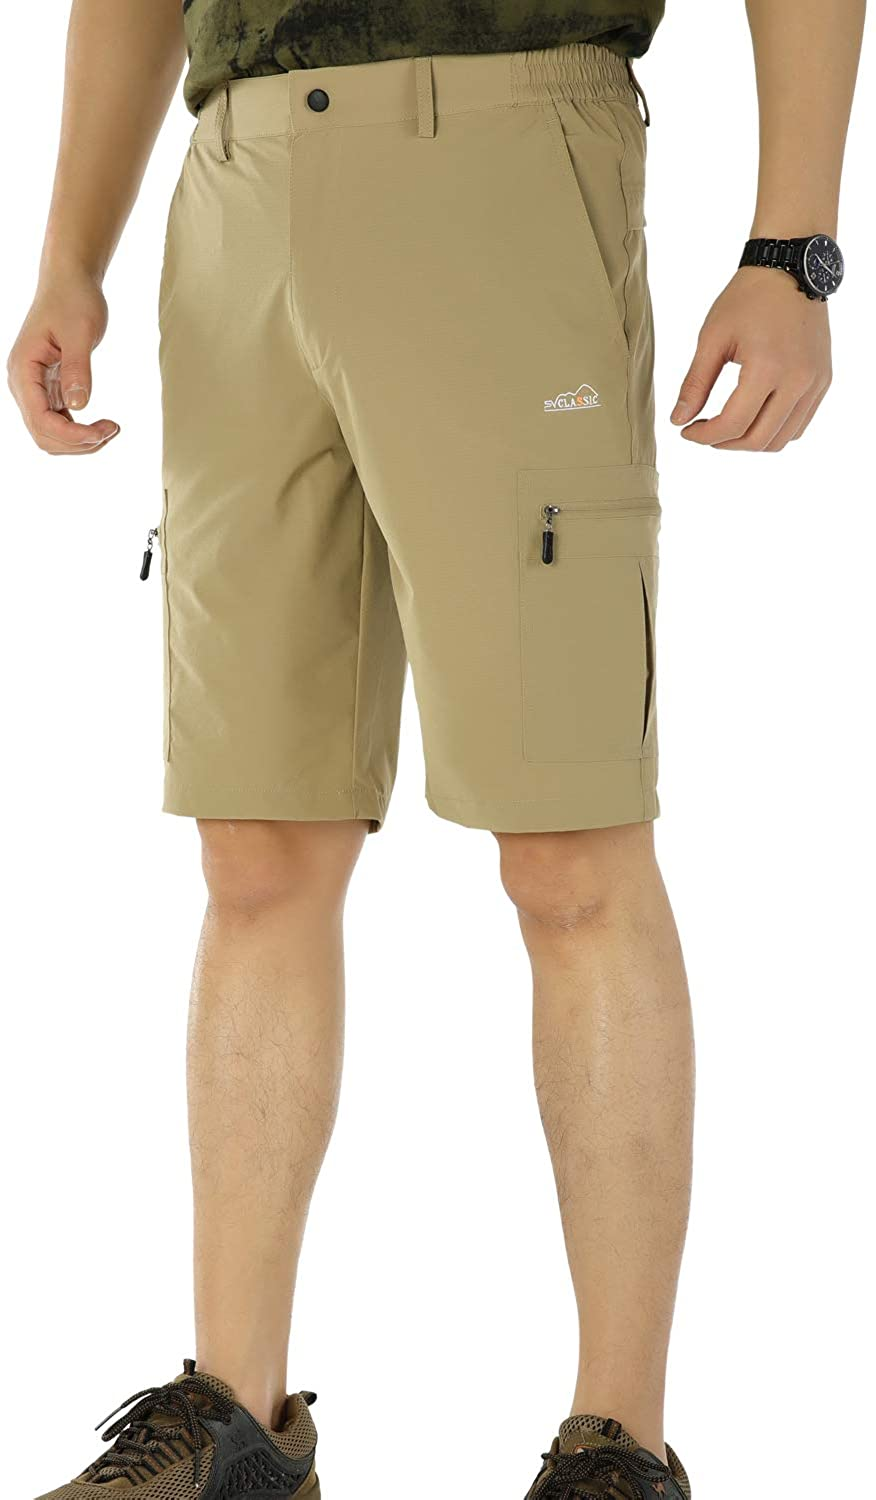 Mr.Stream Men's Gym Athletic Hiking Relaxed Fit Sports Multi-Pocket Cargo Board Shorts